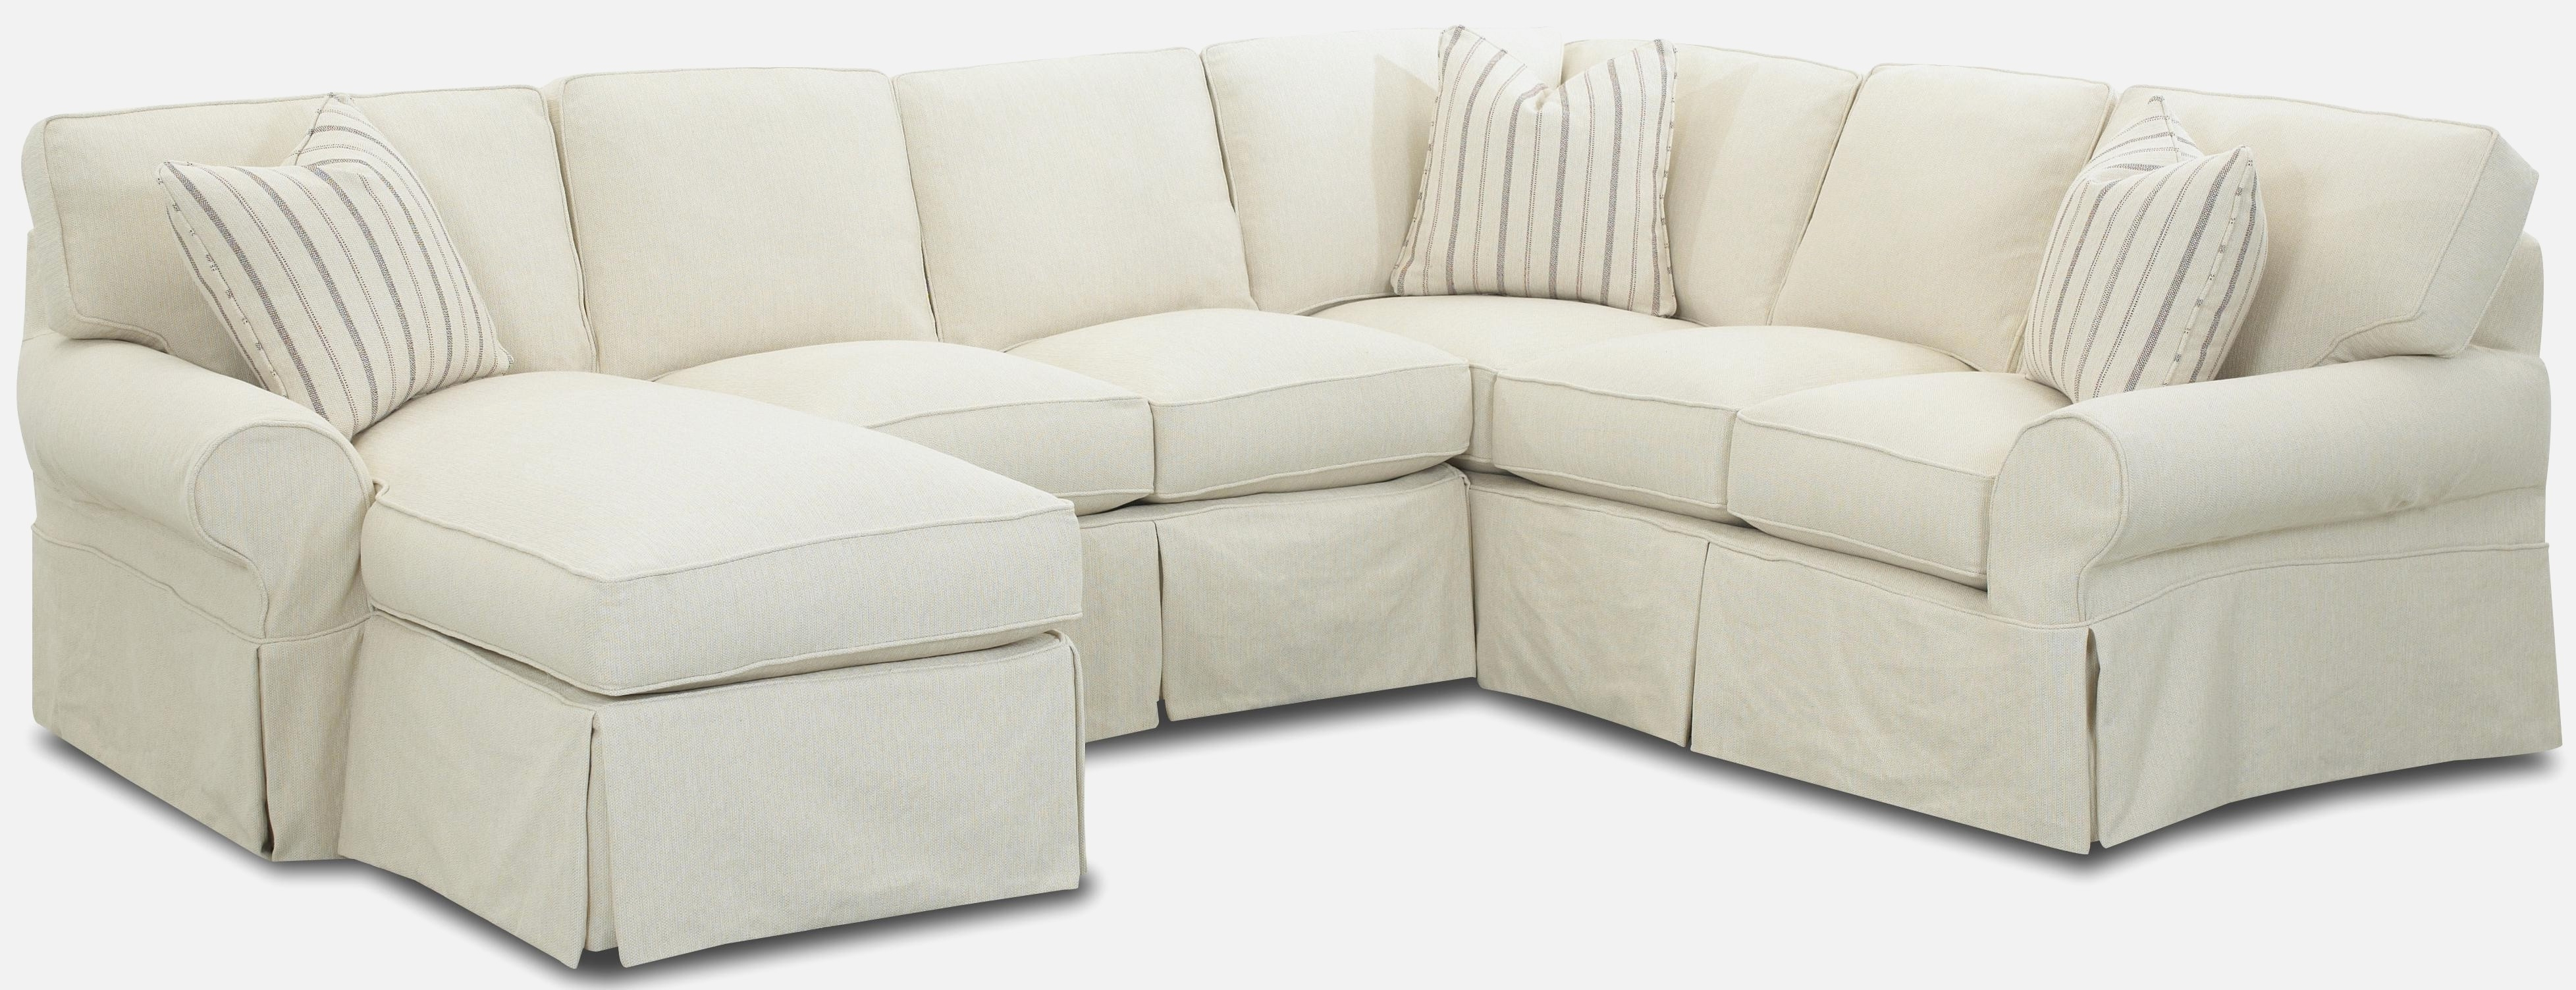 Sectional Sofas With Covers Inside Most Recently Released Sectionals Sofa Covers (View 15 of 20)